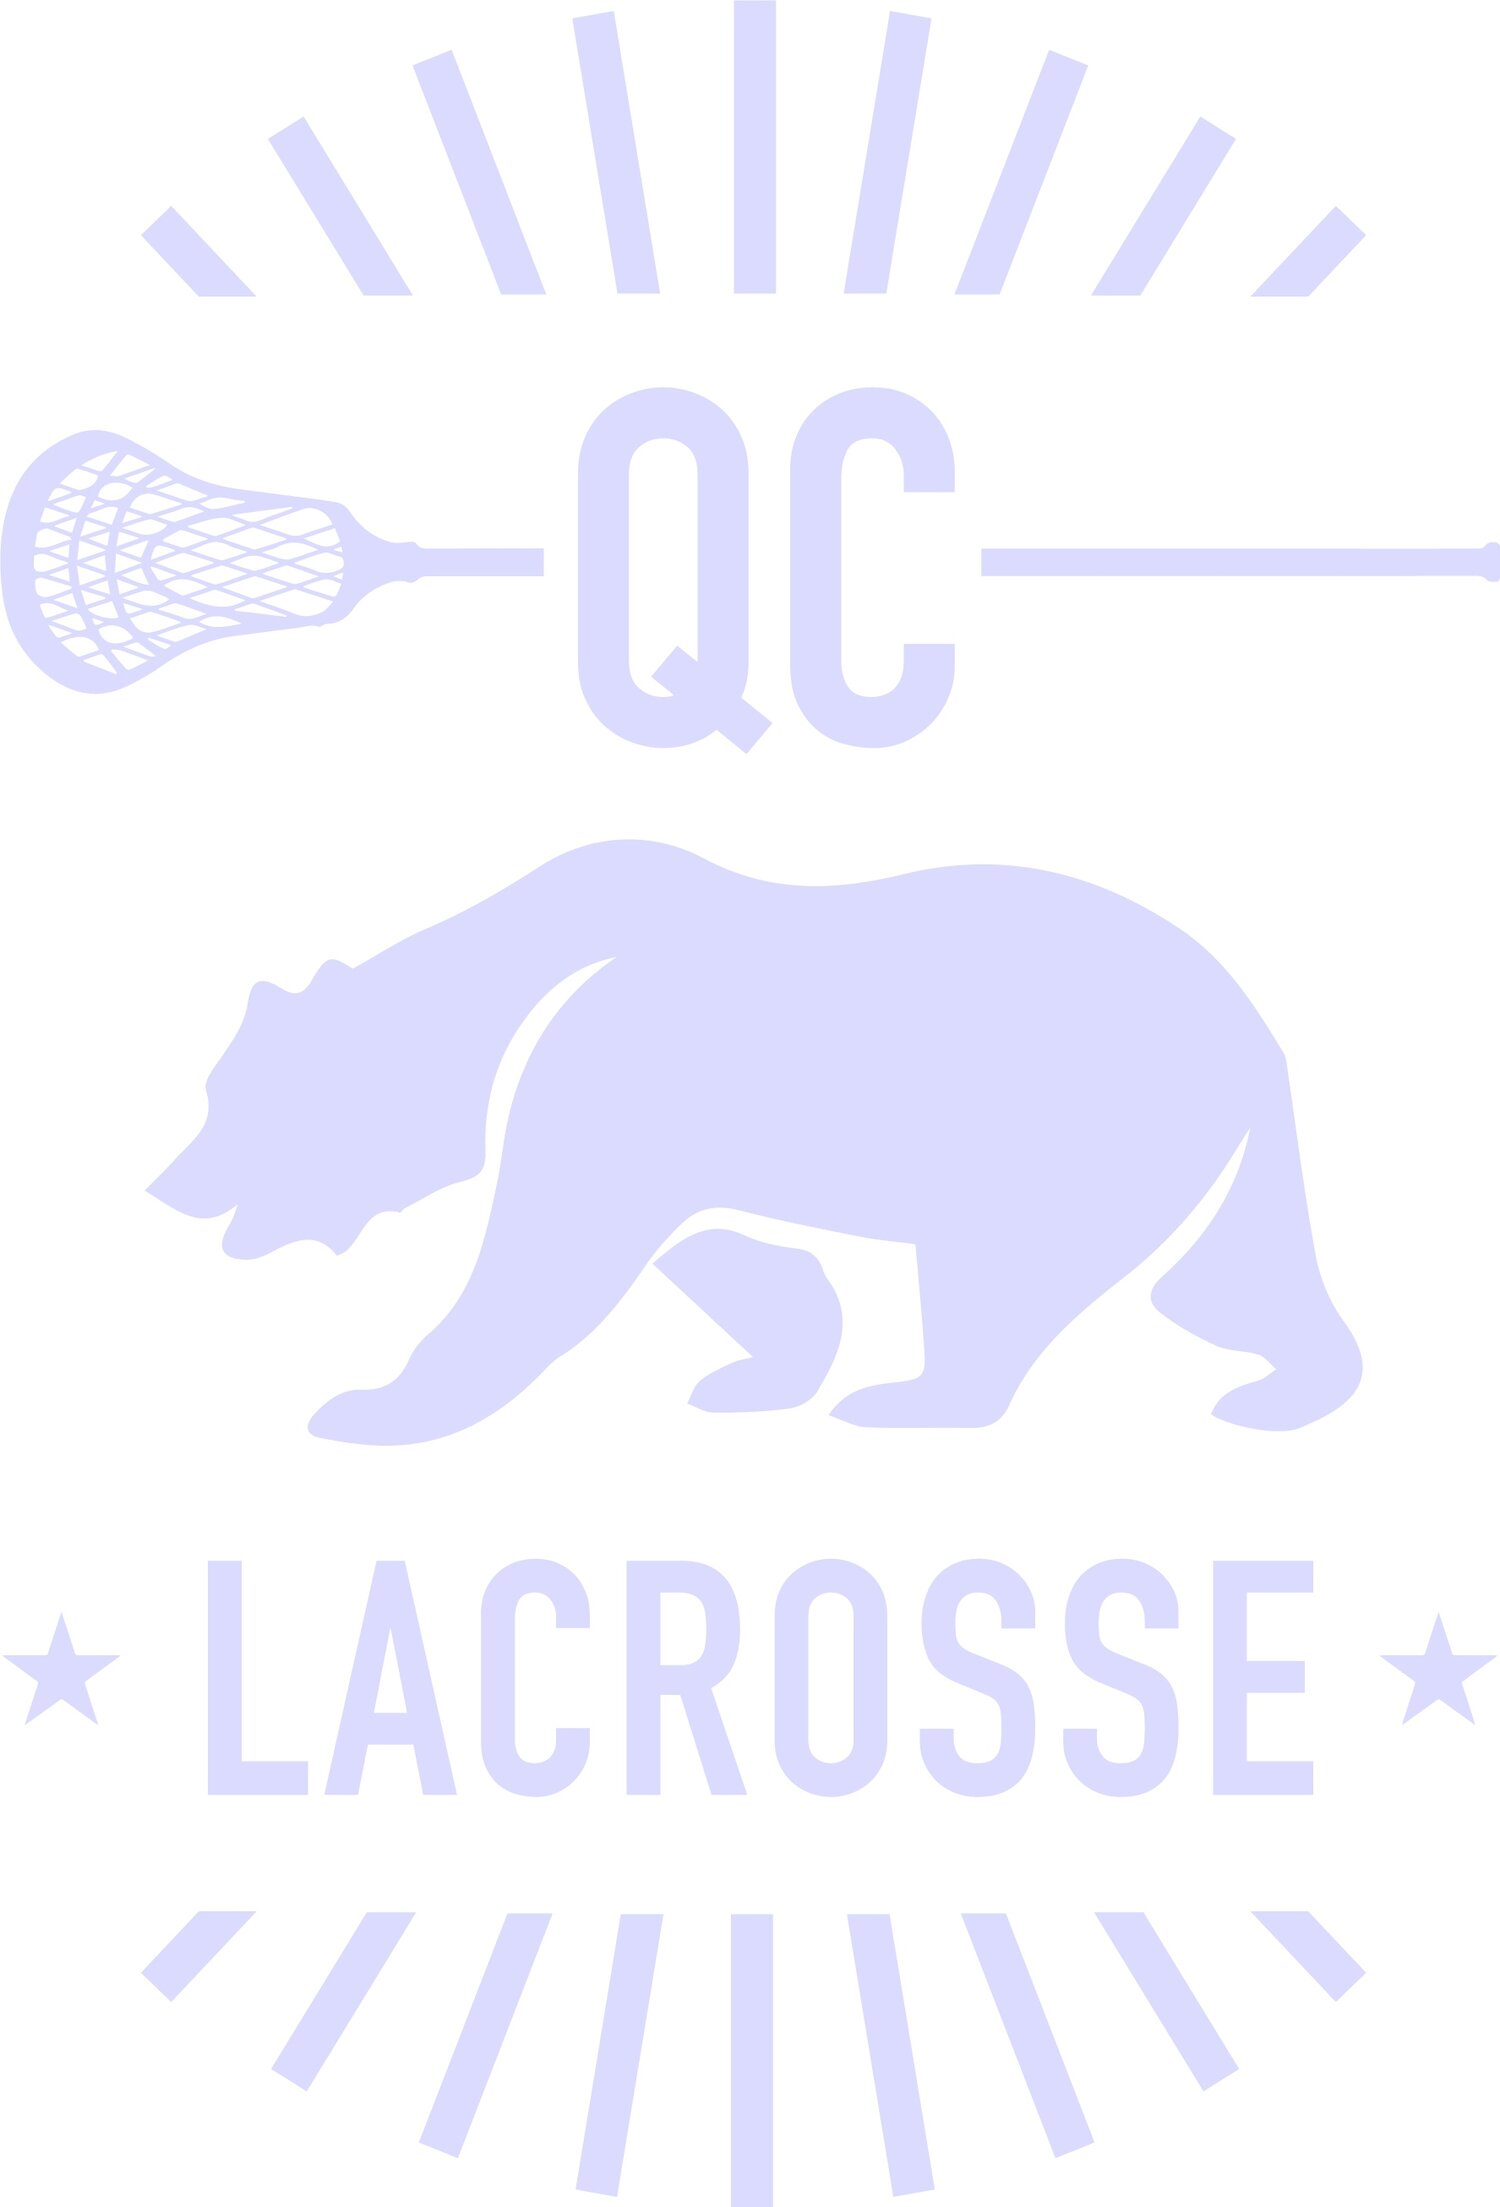 QC Lacrosse Club